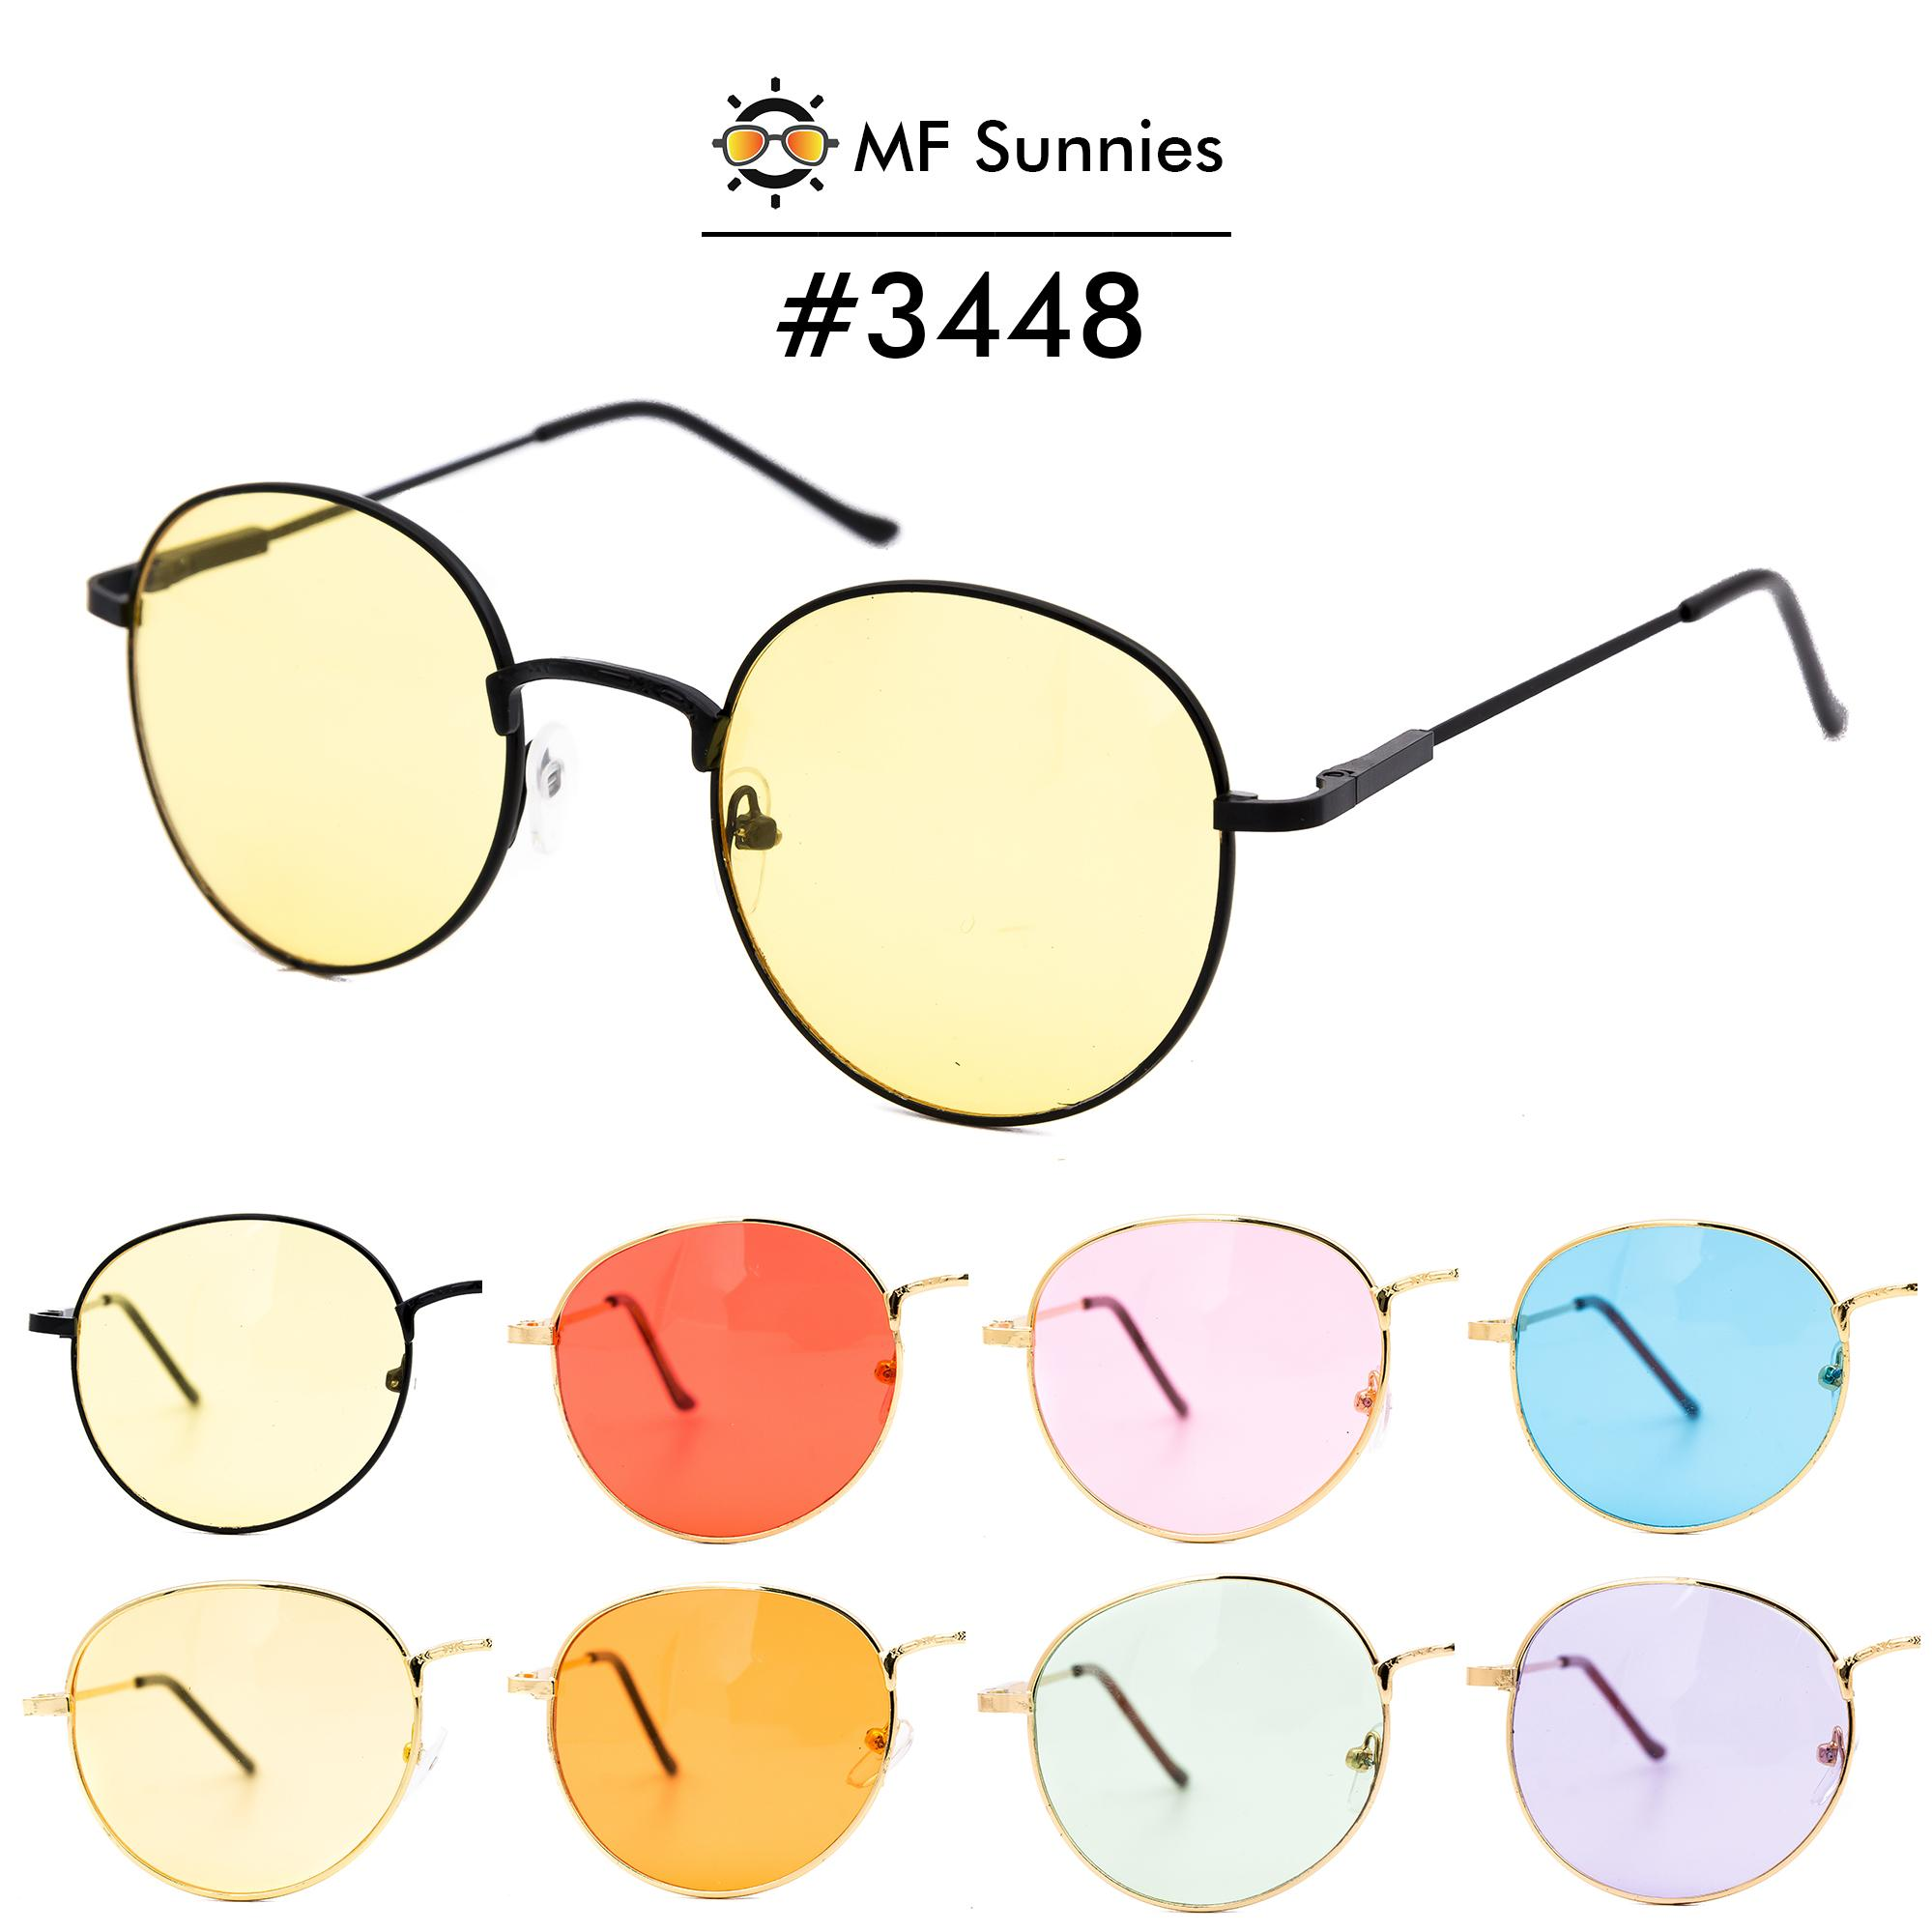 Sunglasses for sale - Shades Glasses online brands, prices & reviews ...